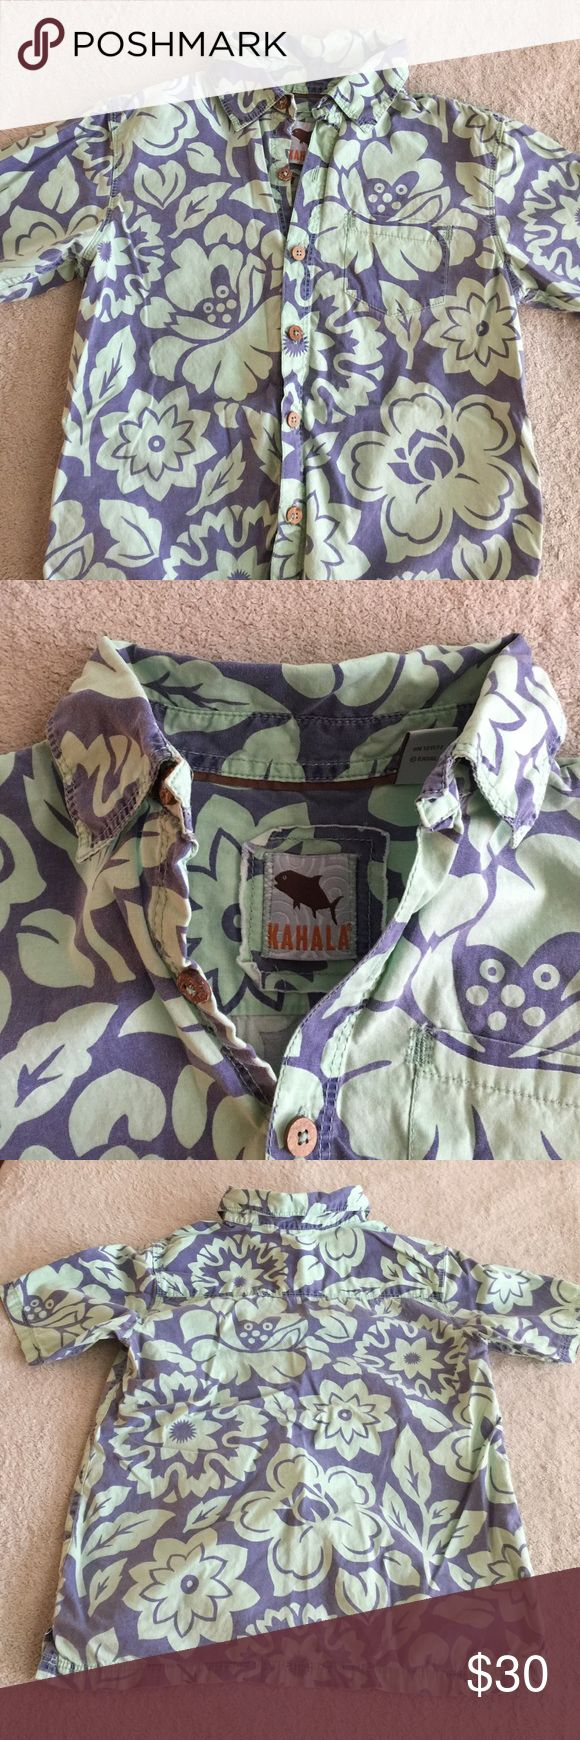 Boys 6-7 Hawaiian shirt Great quality boys Hawaiian shirt.  Only worn once or twice.  Besides needing a good ironing, no signs of wear.  Wish it still fit my son. Kahala Shirts & Tops Button Down Shirts